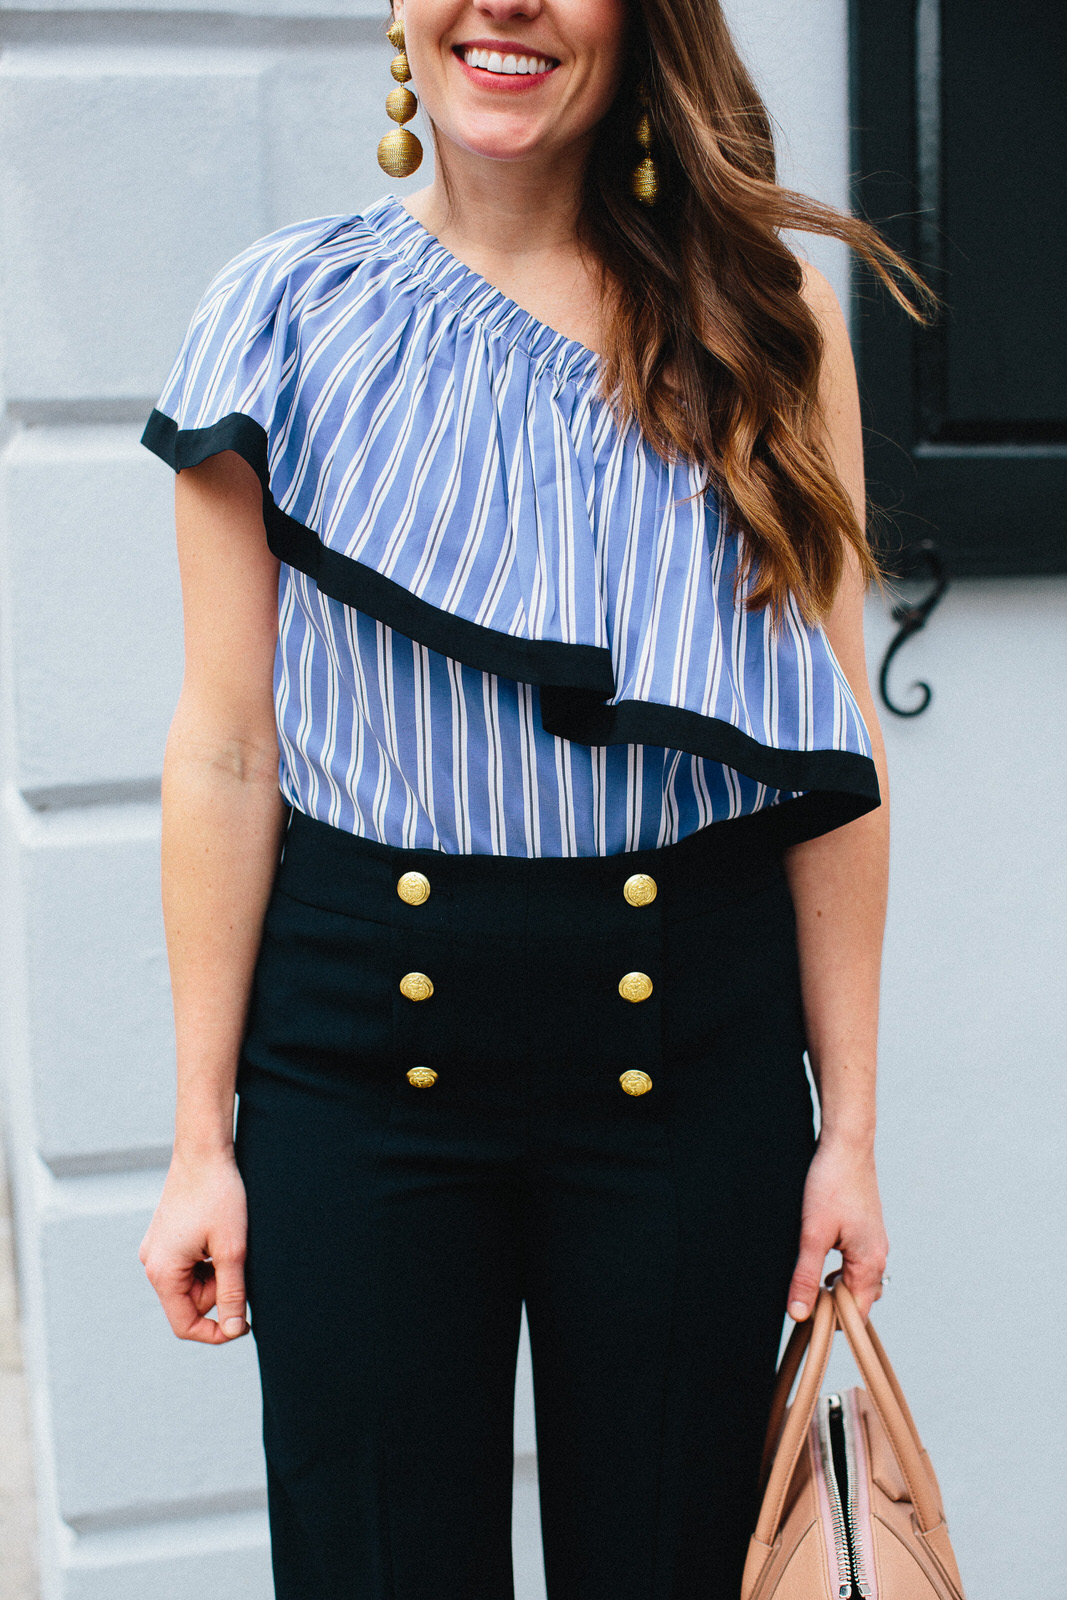 Liz Adams styles a nautical look in Charleston, wearing Milly Top and Sezane Pants - Sequins & Stripes